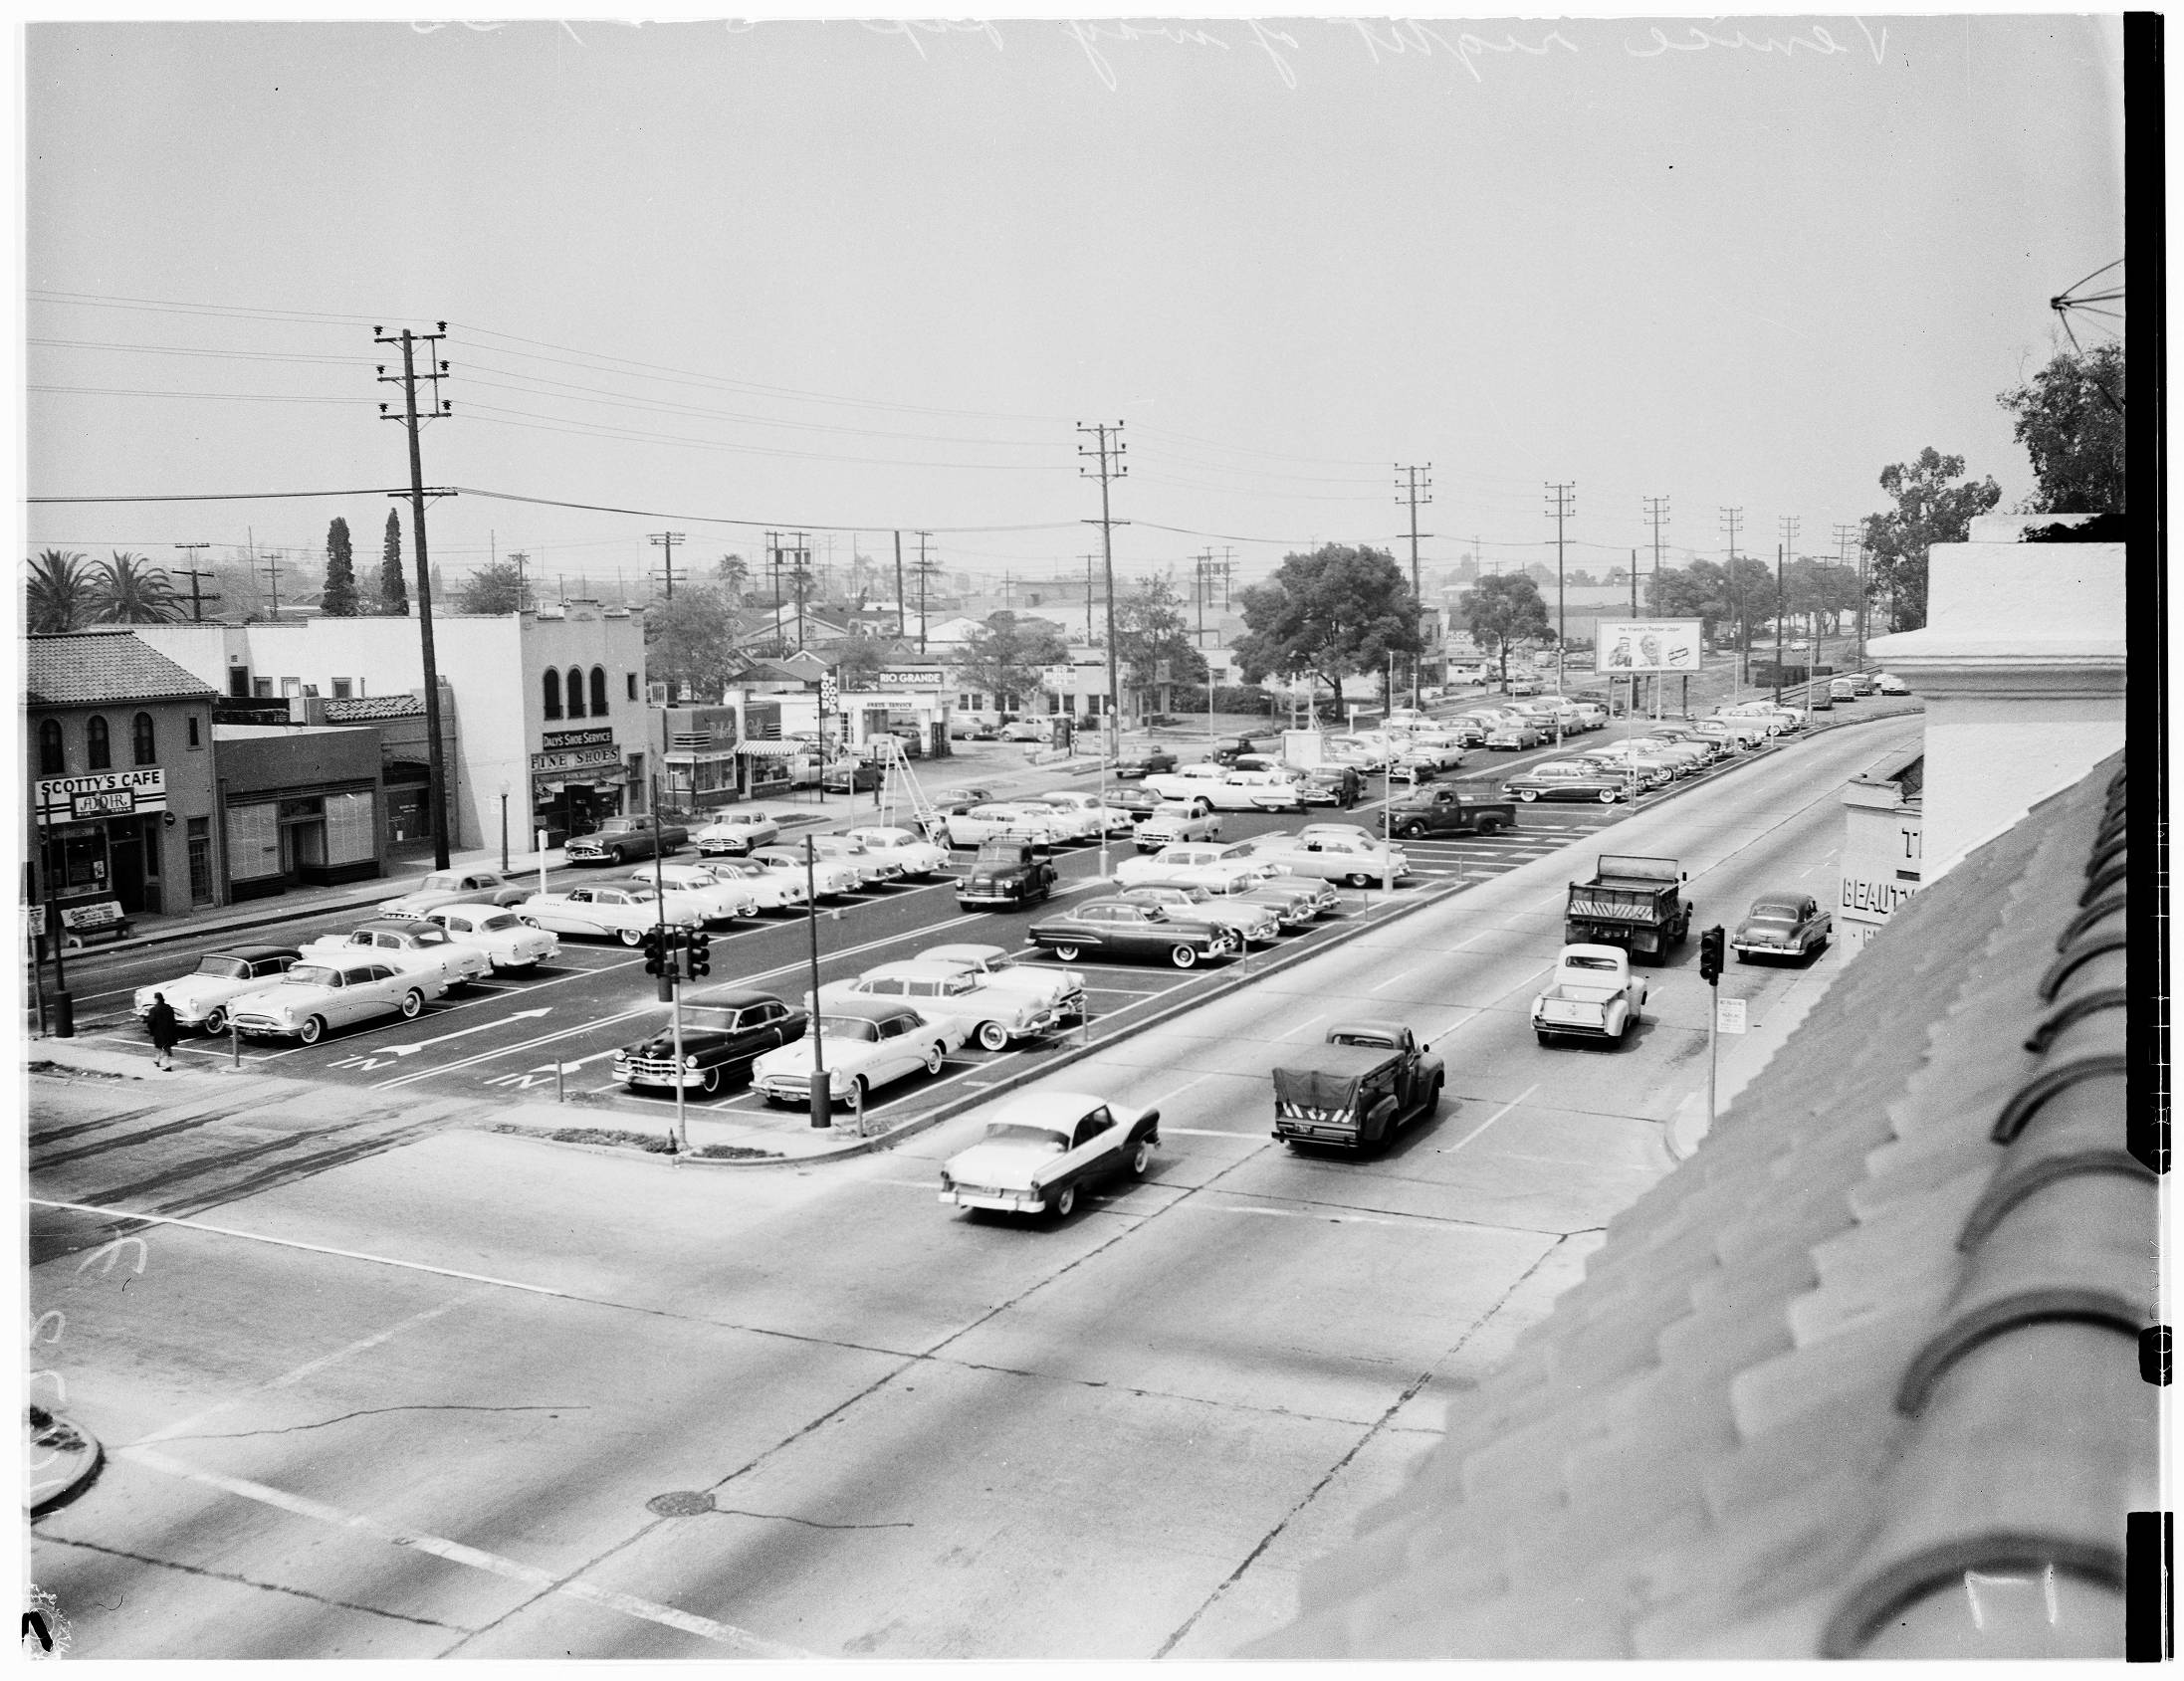 In 1955, a Culver City auto dealership used the abandoned median of Venice Boulevard as a storage lot. Courtesy of the USC Libraries - Los Angeles Examiner Collection.